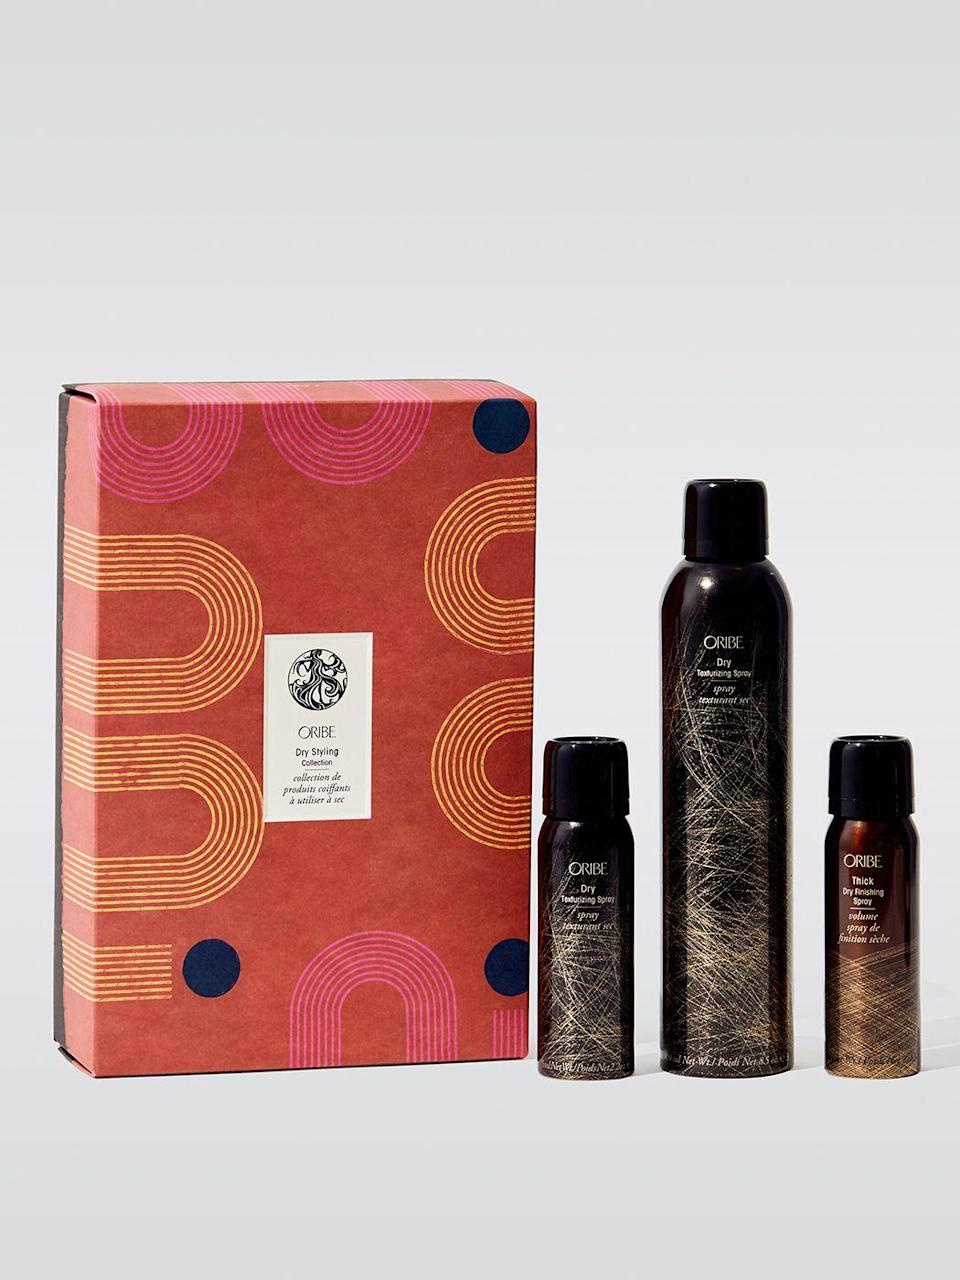 """<p><strong>Oribe</strong></p><p>carbon38.com</p><p><strong>$75.00</strong></p><p><a href=""""https://go.redirectingat.com?id=74968X1596630&url=https%3A%2F%2Fwww.carbon38.com%2Fproduct%2Fdry-styling-collection&sref=https%3A%2F%2Fwww.menshealth.com%2Ftechnology-gear%2Fg34453261%2Fbest-gifts-for-sister%2F"""" rel=""""nofollow noopener"""" target=""""_blank"""" data-ylk=""""slk:BUY IT HERE"""" class=""""link rapid-noclick-resp"""">BUY IT HERE</a></p><p>You might not understand the concept of """"dry styling"""" but this is one set that any sister can appreciate. Oribe makes the best hair products around (if you've ever used the bathroom at a Barry's Bootcamp you would know). The smell is so lovely that it doubles as a perfume.</p>"""